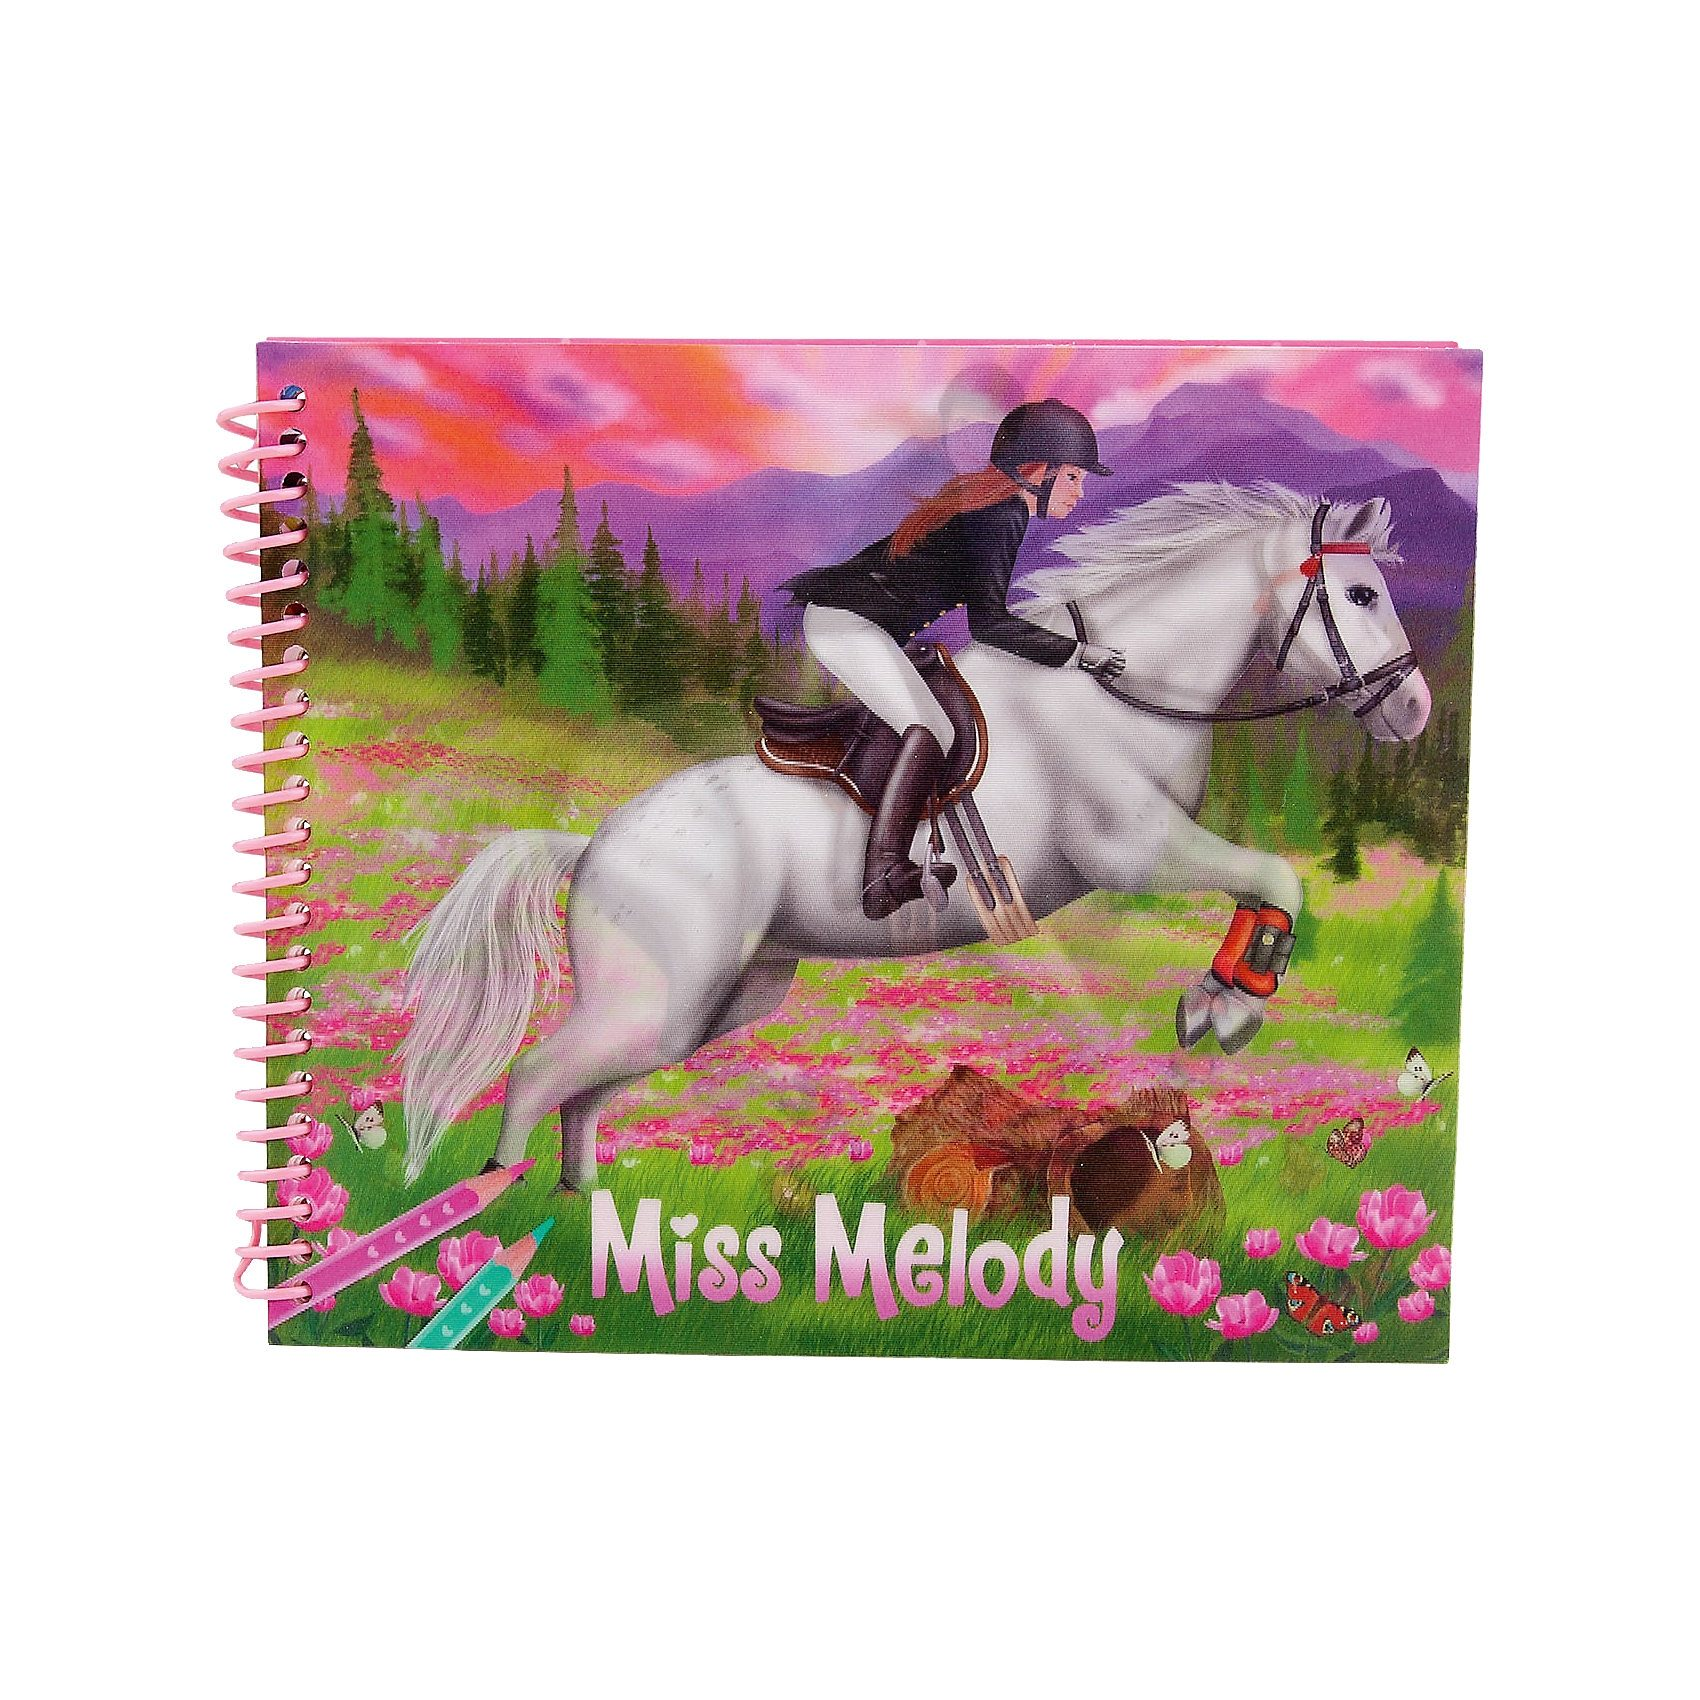 Depesche Malbuch Dress up your Horse Miss Melody